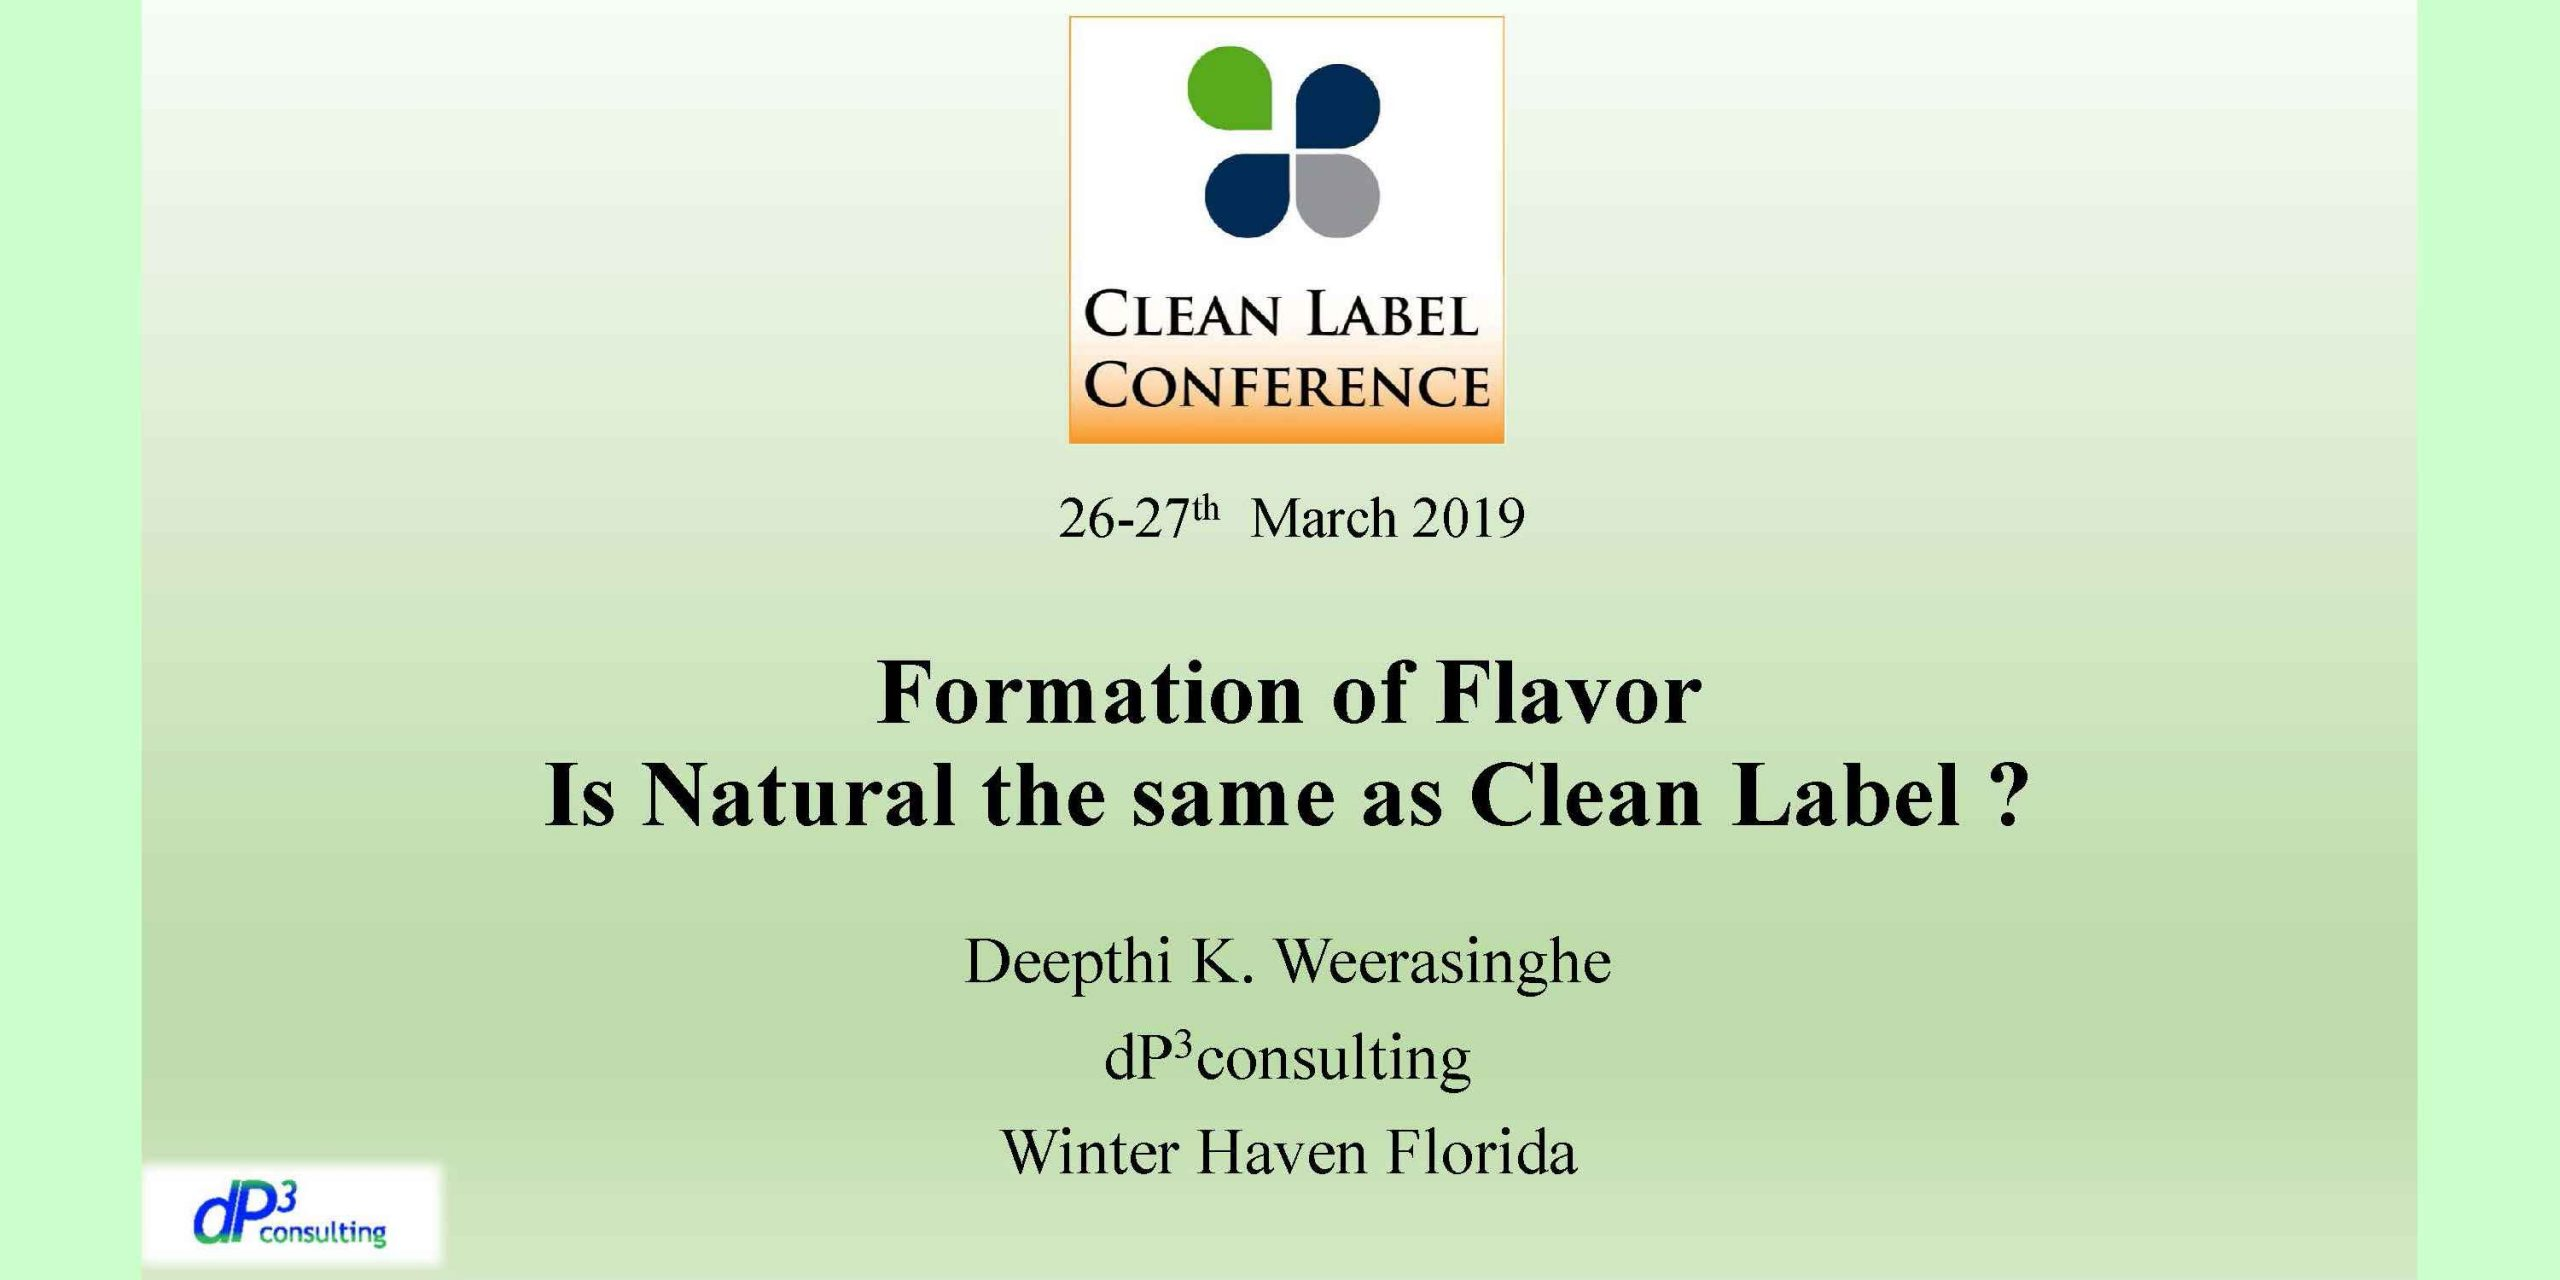 DEEPTHI WEERASINGHE NATURAL CLEAN LABEL FLAVORS 2019 CLC